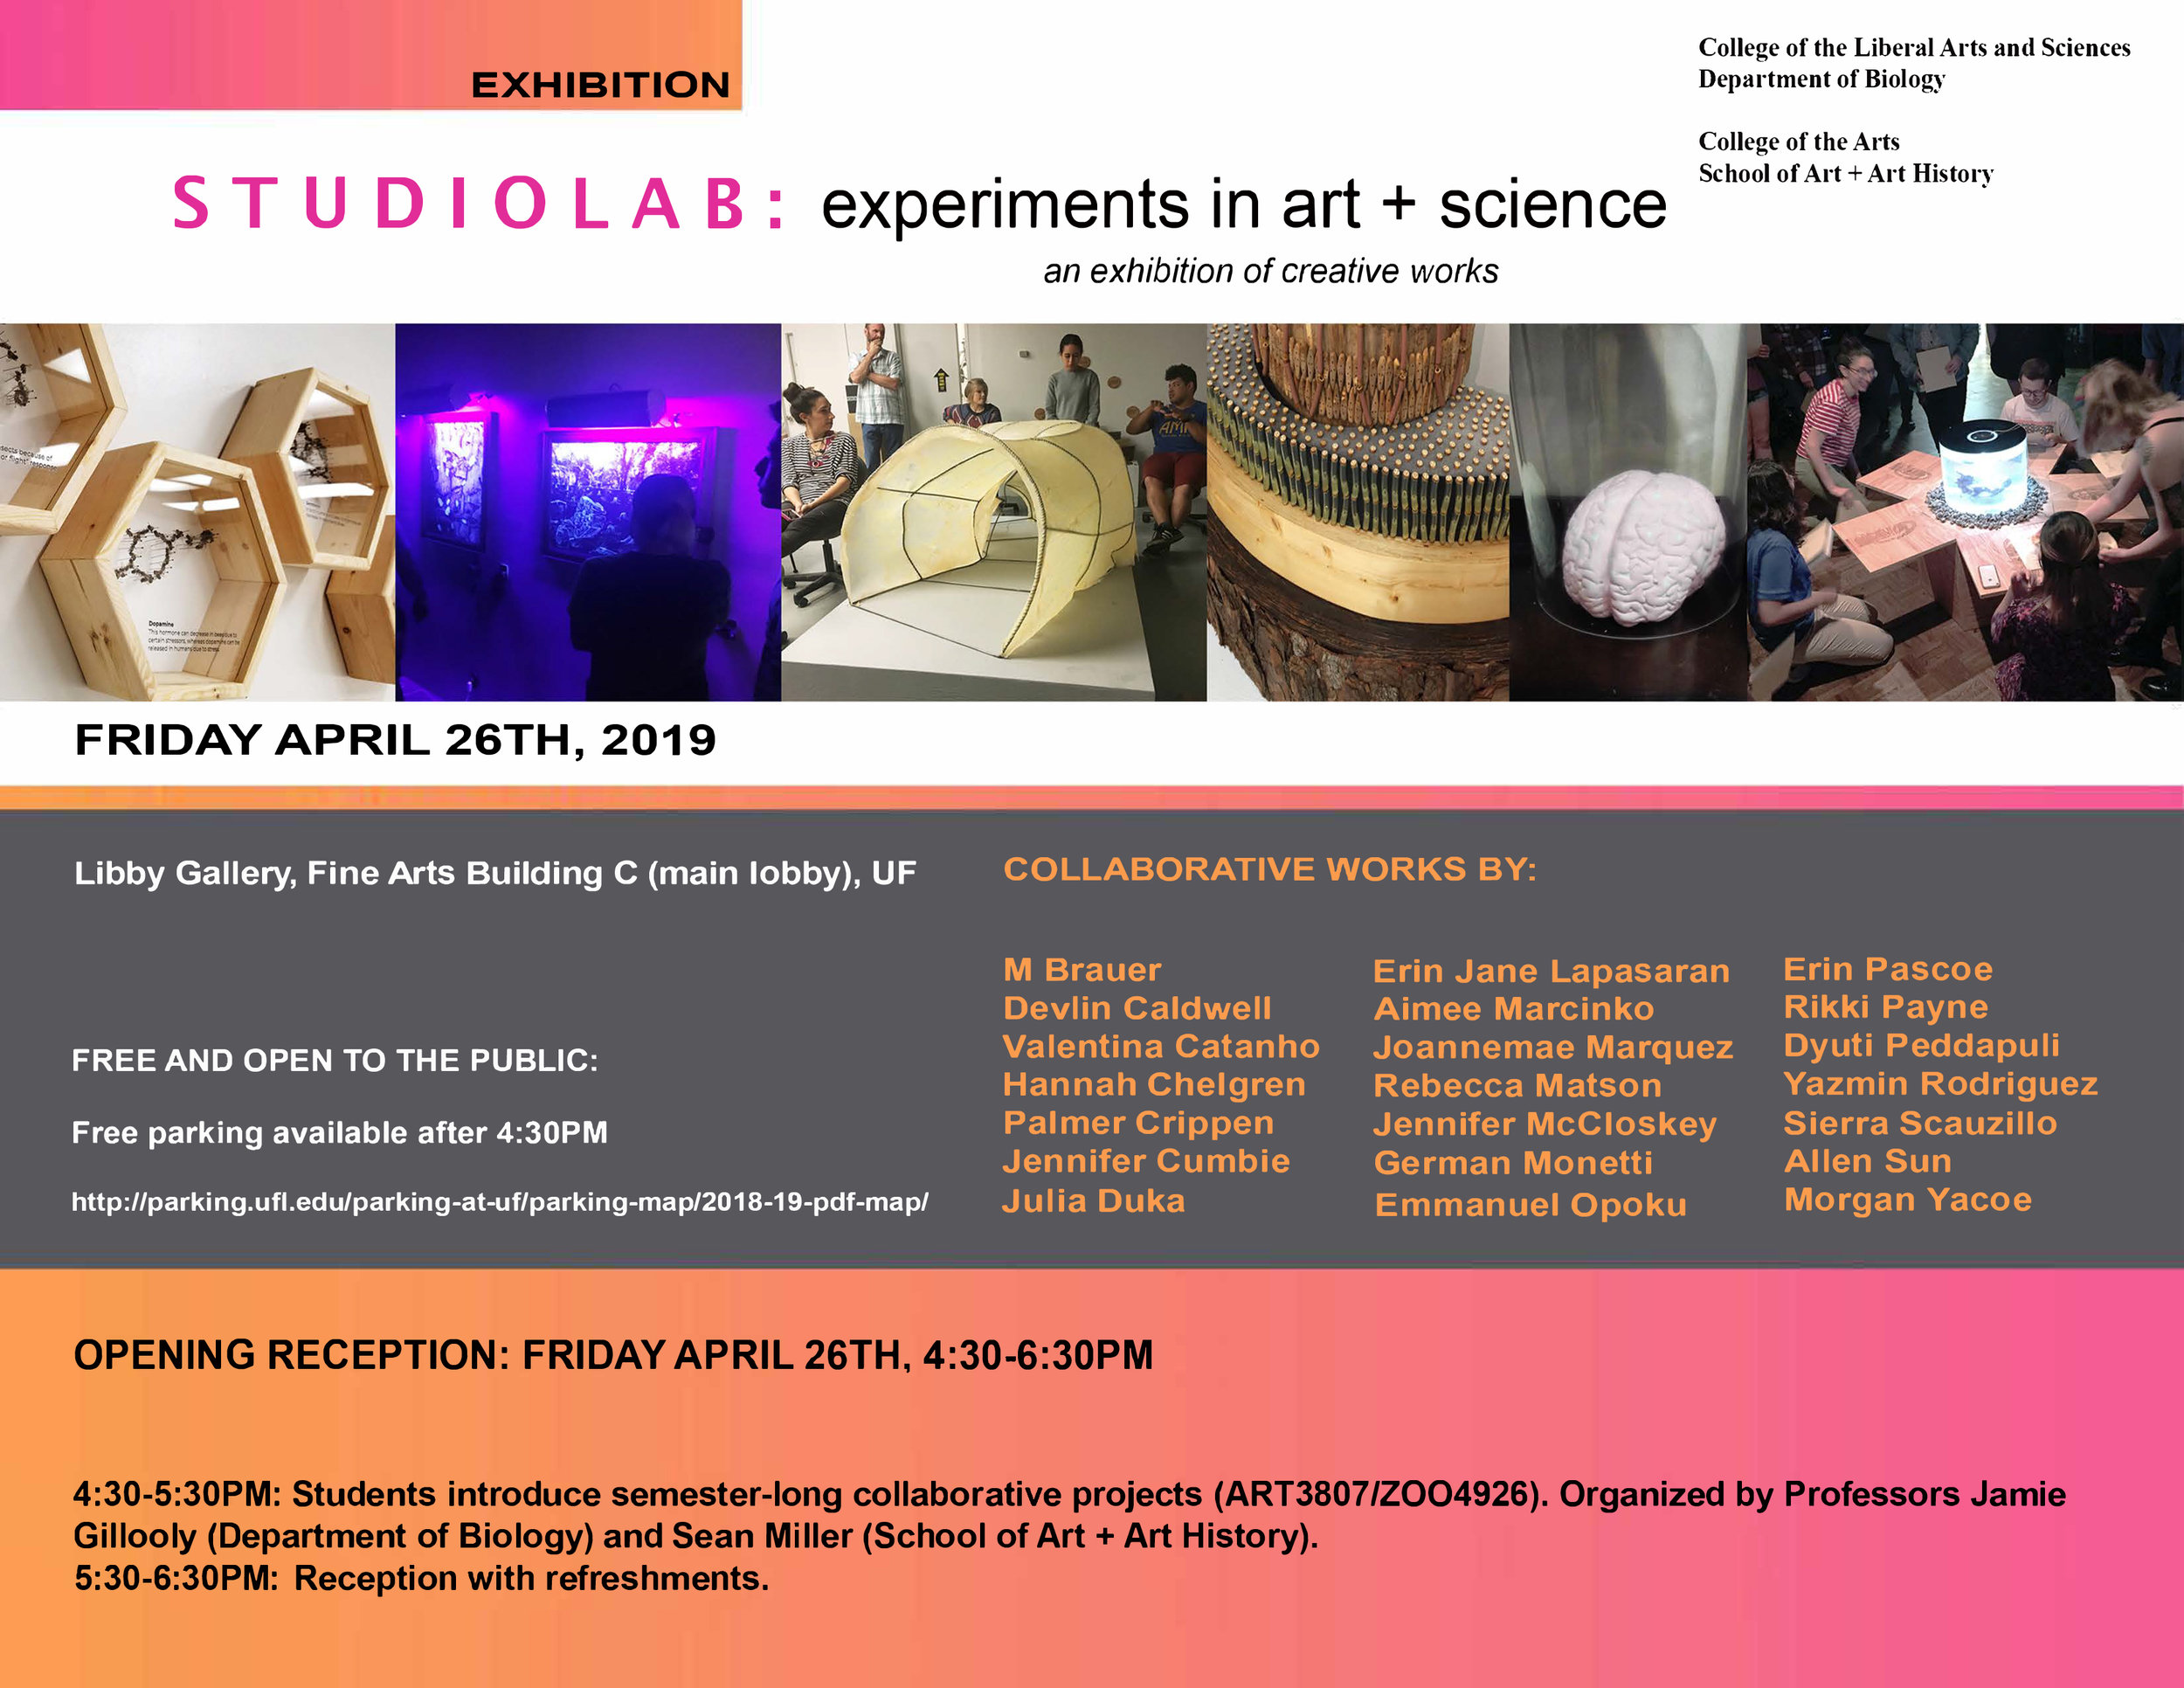 Studiolab_Final_Exhibition_Poster.jpg